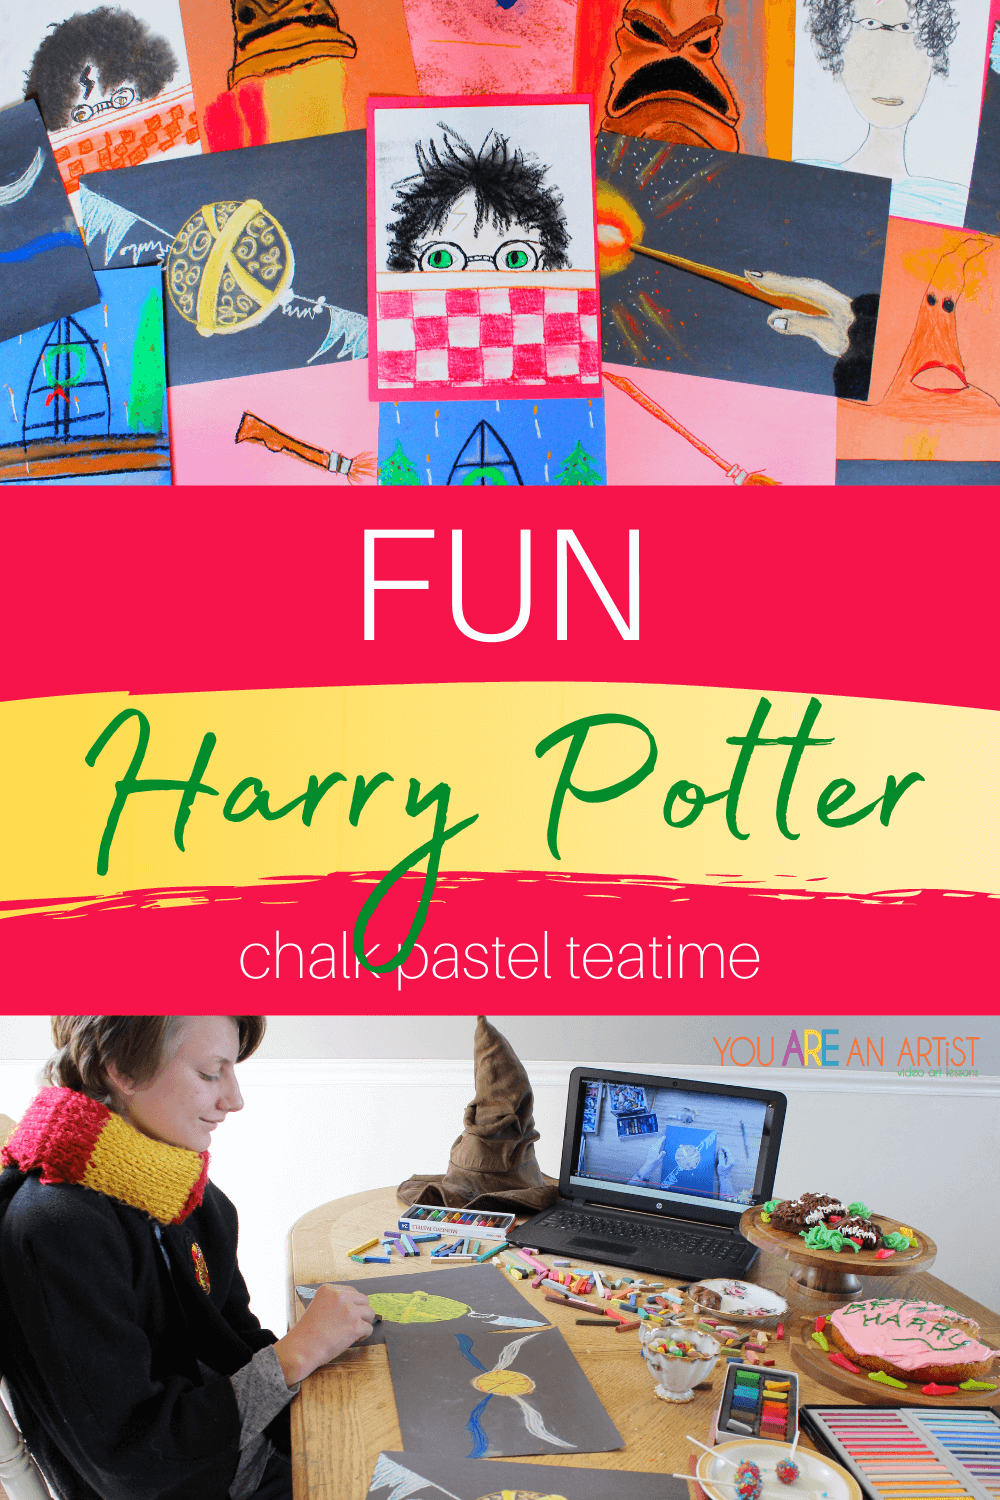 Fun Harry Potter Chalk Pastel Teatime: Check out this fun Harry Potter chalk pastel teatime that even muggles will love! You'll find magical art lessons that everyone in the family will enjoy. You don't have to have a magic wand or spellbook. All you need is a simple set of chalk pastels, a pack of construction paper, and the teatime treats of your choice to bring the magic of art and Harry Potter into your home! #HarryPotter #HarryPotterart #HarryPotterartforkids #HarryPotterchalkpastels #HarryPotterchalkpastelteatime #chalkpastelteatime #chalkpastelatthemovies #videoartlessons #YouAREAnArtistClubhouseMembership #YouAREAnArtist